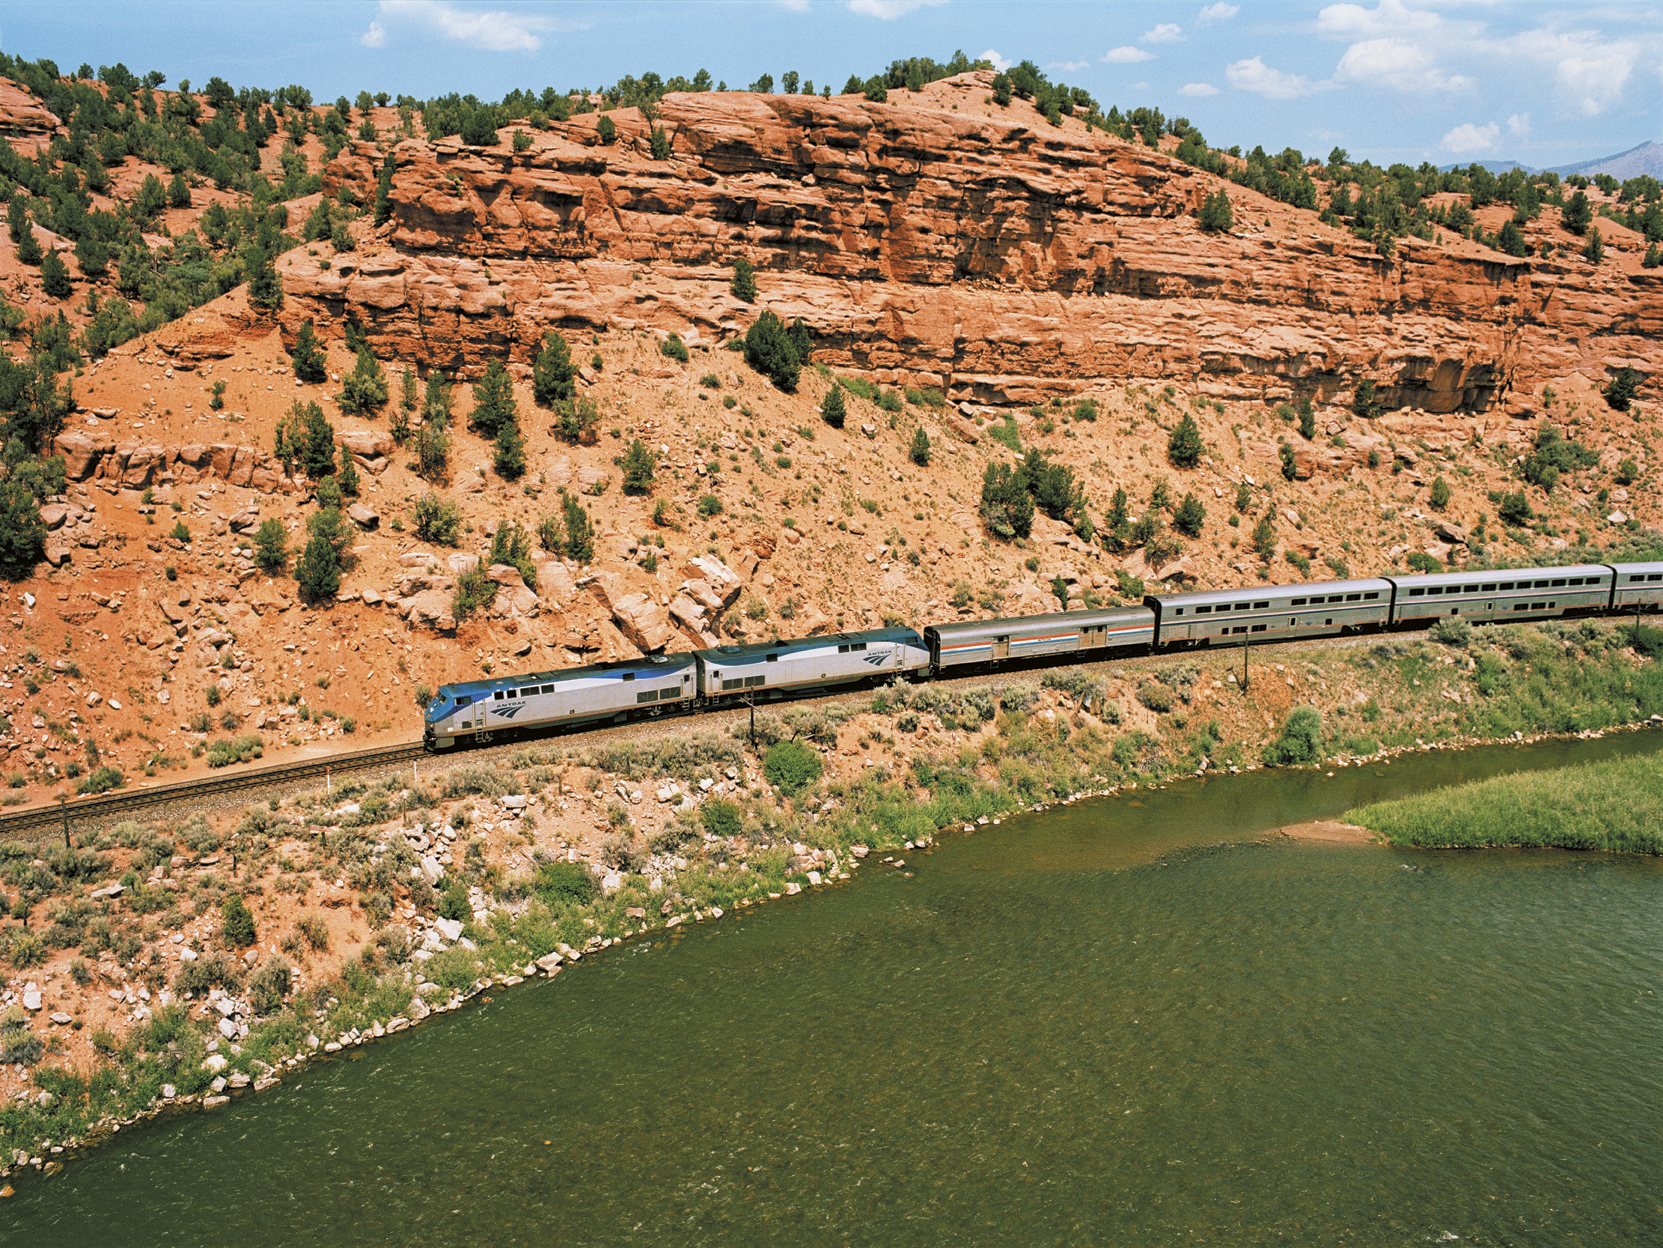 Glenwood canyon inspired amtrak s vista dome railcar glenwood springs colorado Today s home furniture design grand junction co